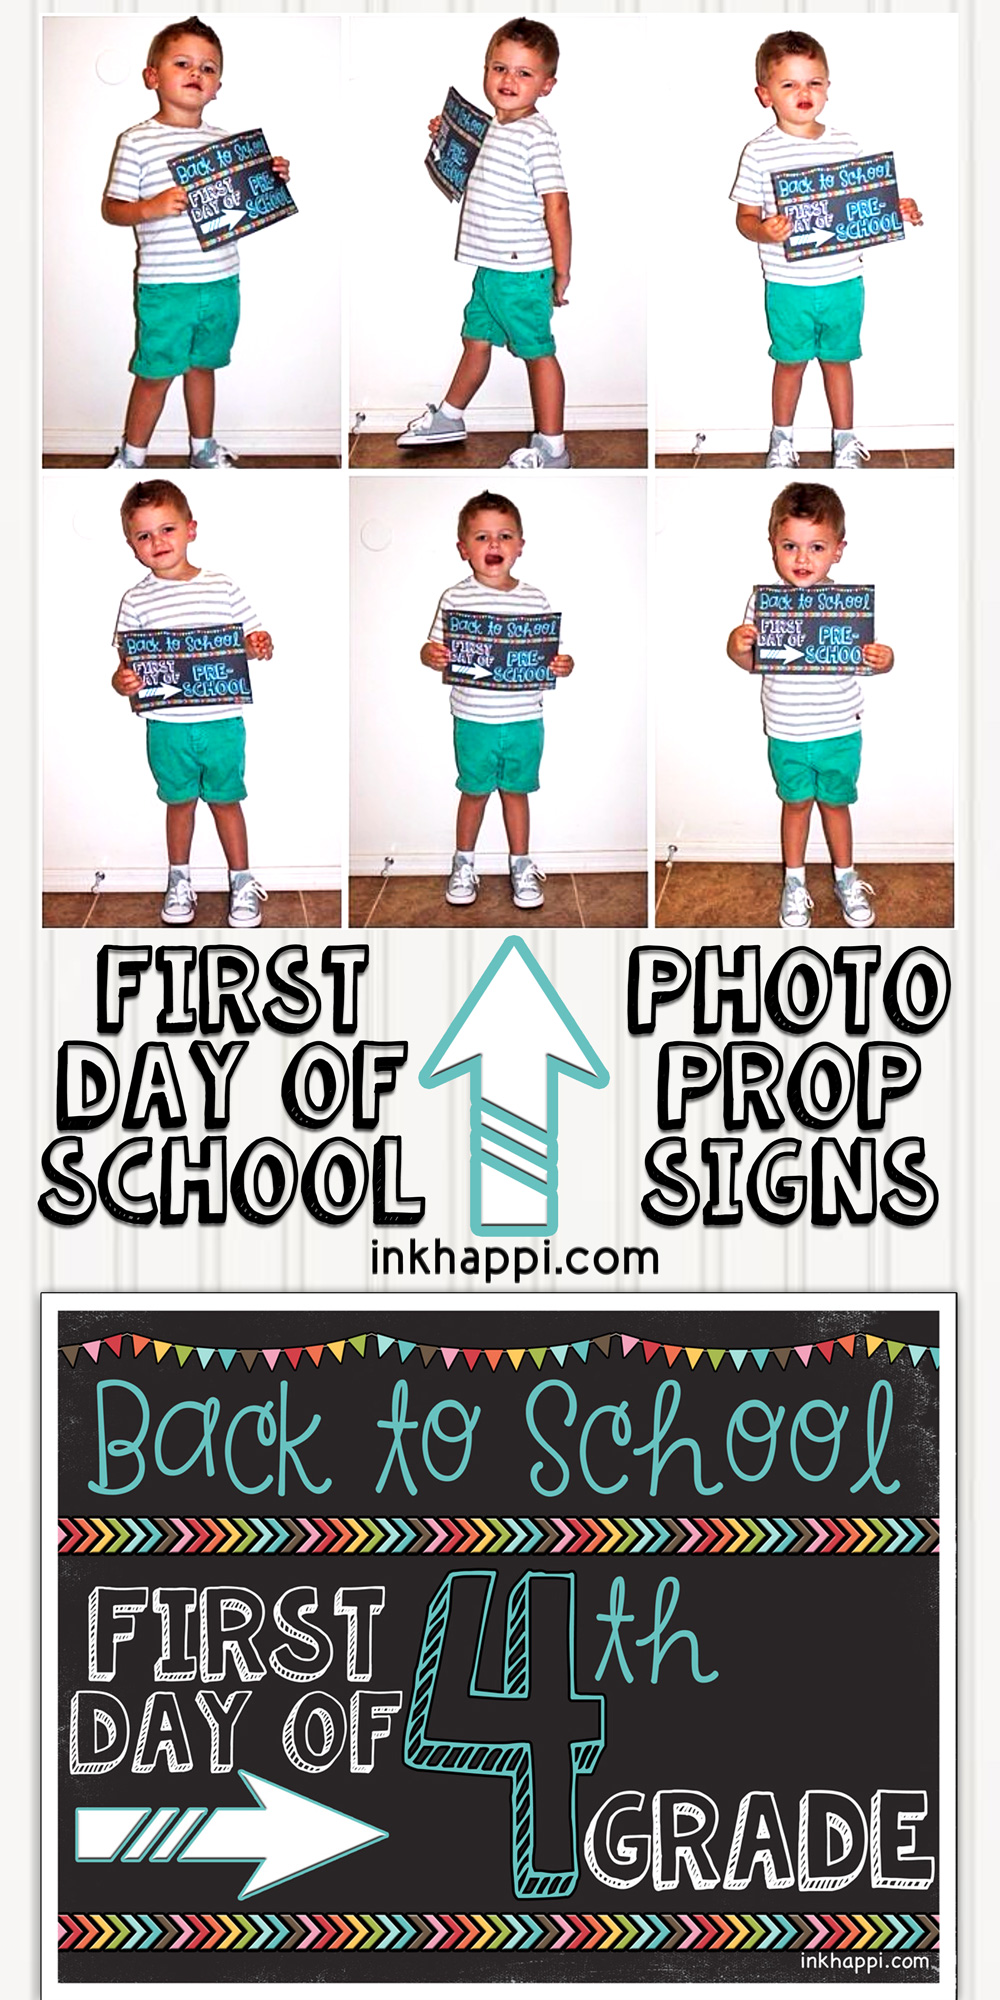 https://inkhappi.com/first-day-of-school/